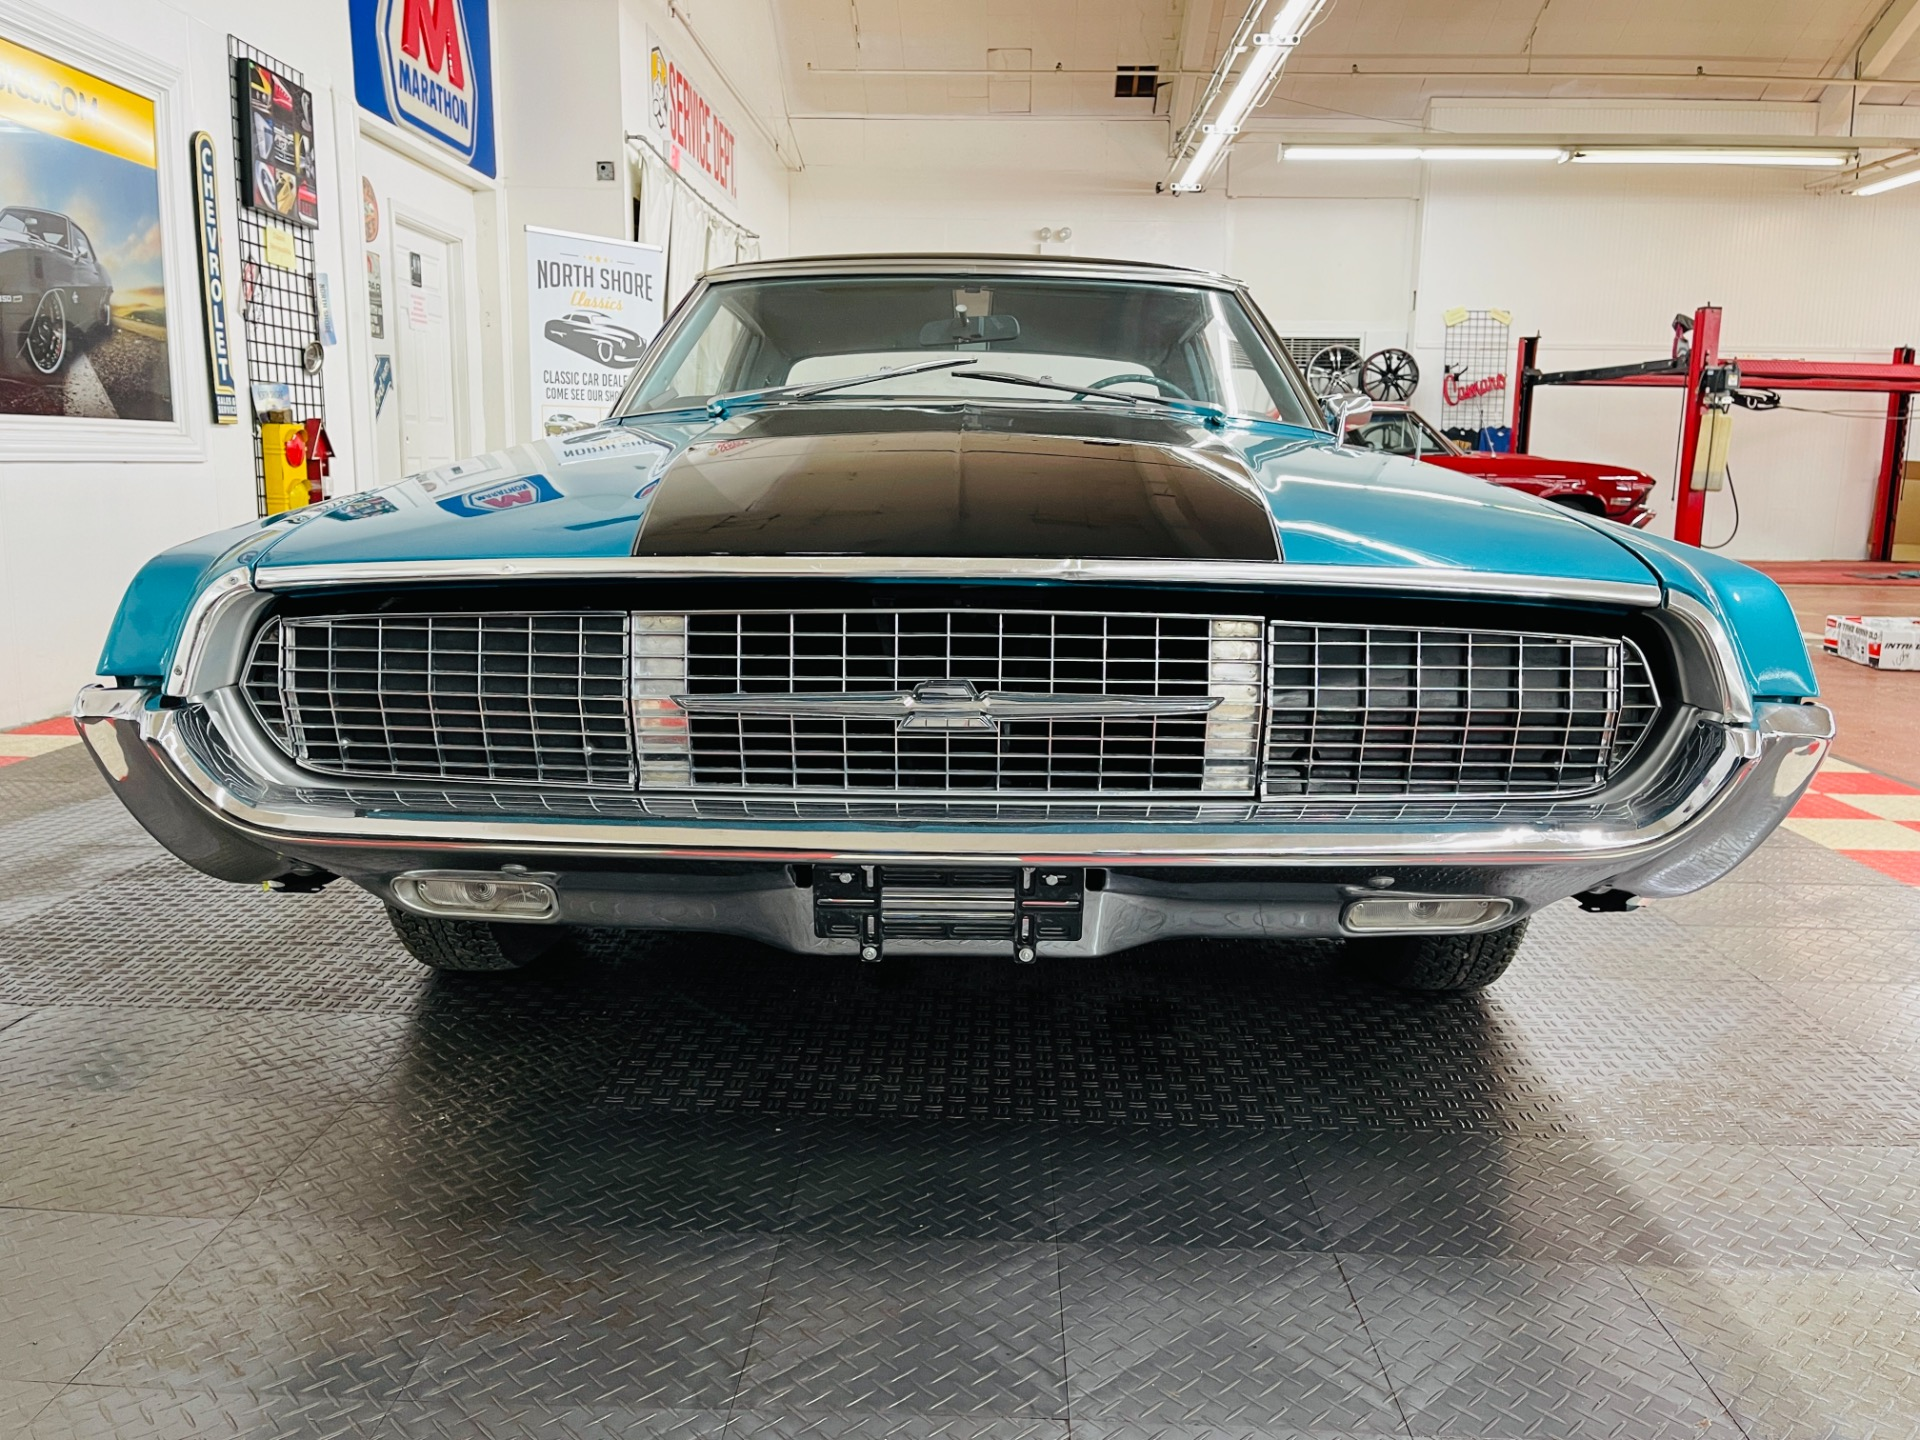 Used 1967 Ford Thunderbird -NEW PAINT - LOTS OF NEW PARTS - DRIVES GREAT - SEE VIDEO - | Mundelein, IL